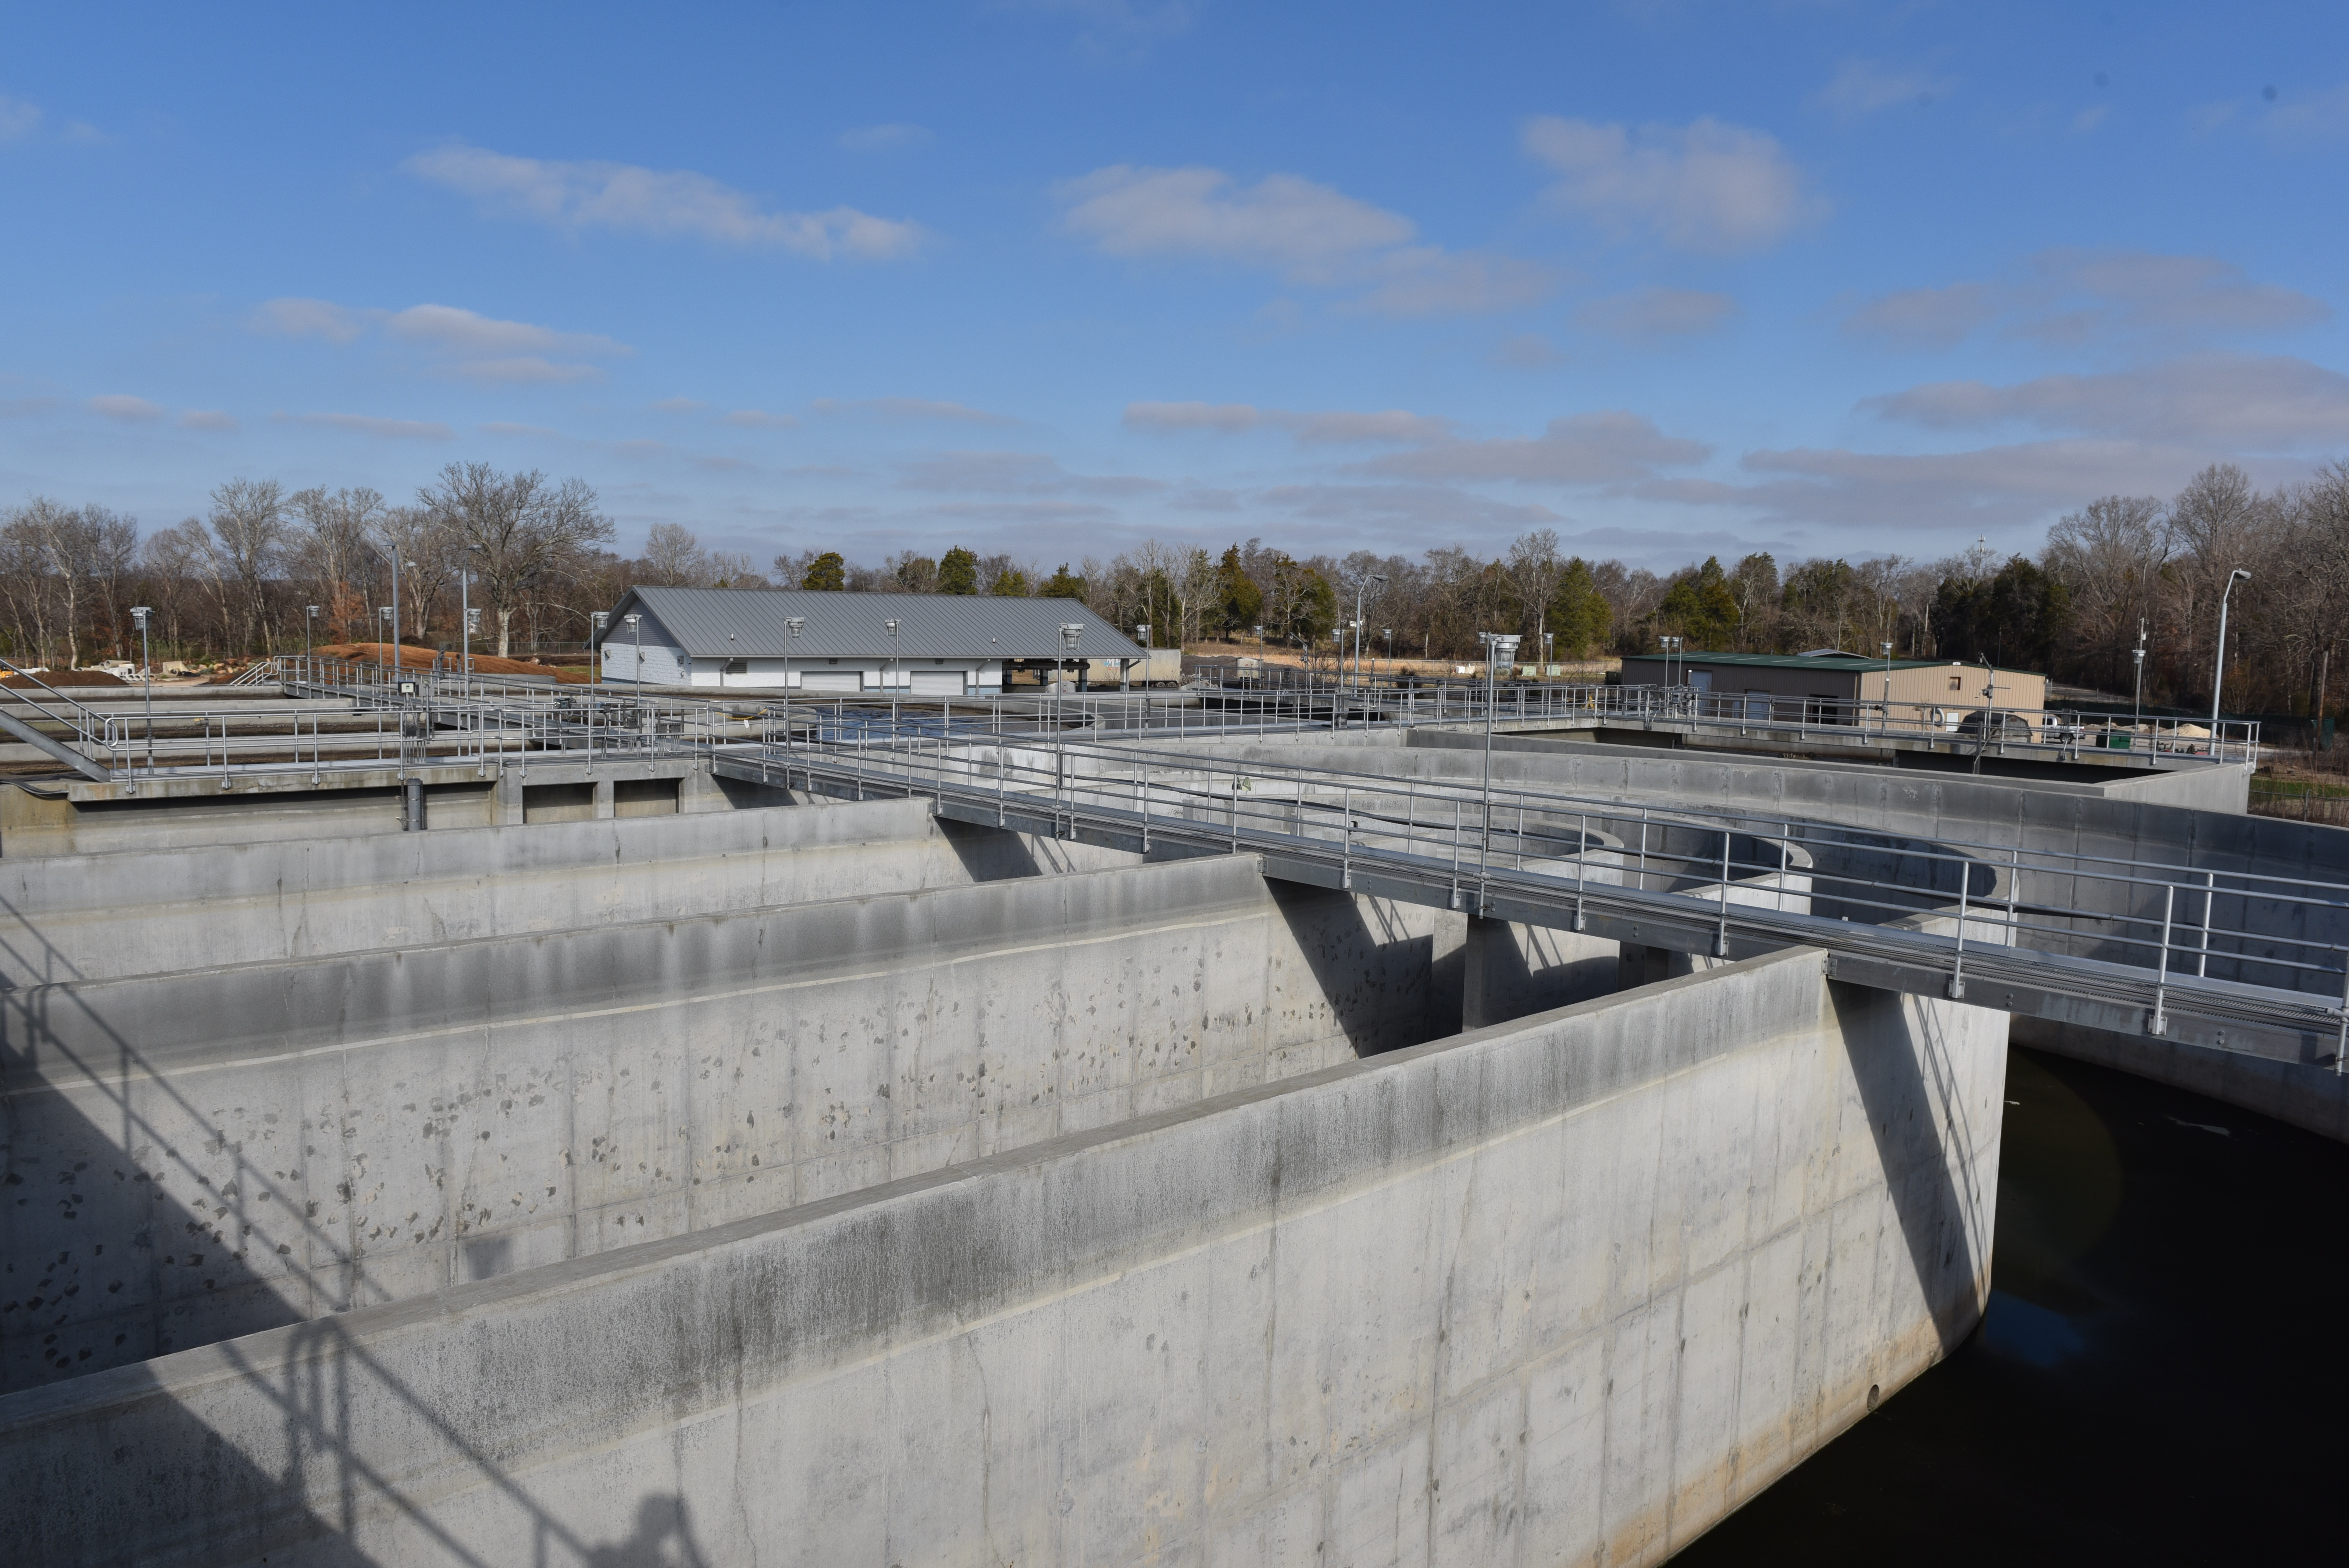 The Spring Hill Waste Water Treatment Plant is the only five-stage plant in Tennessee